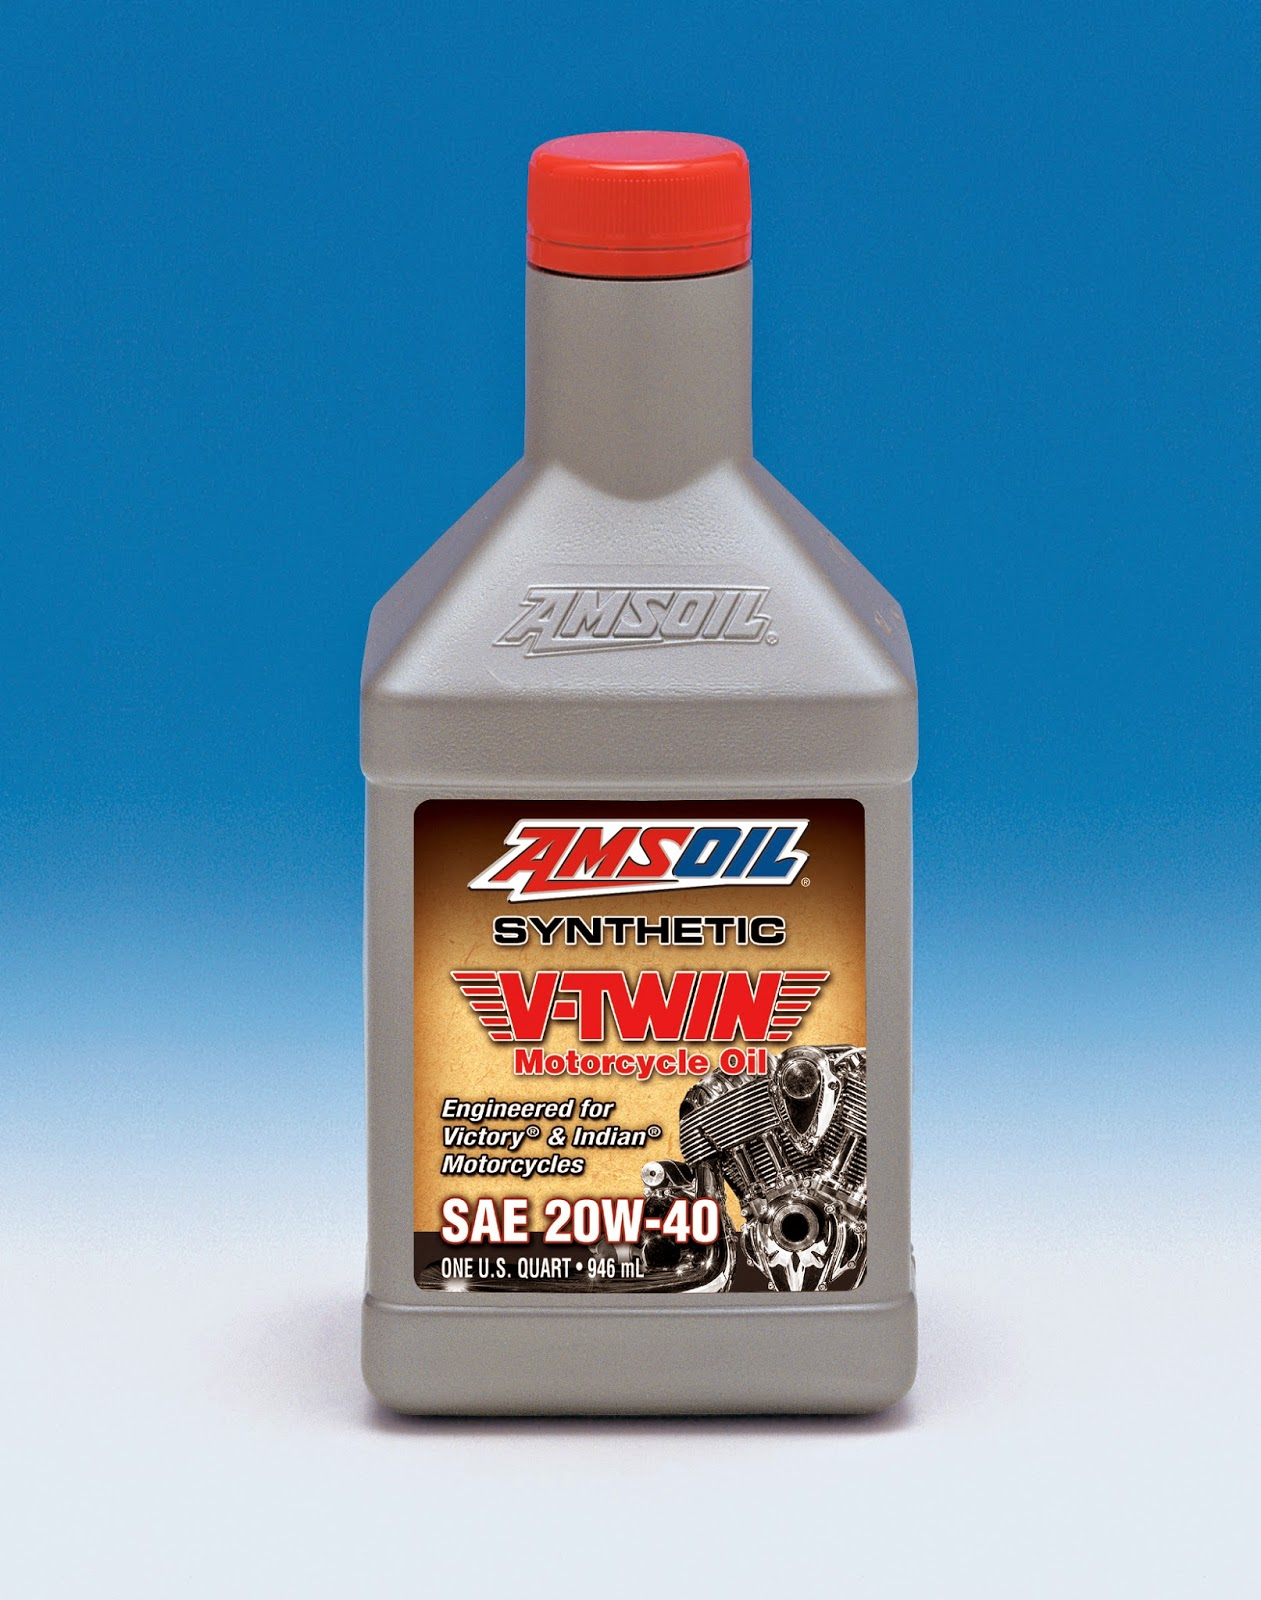 A premium oil designed for those who demand the absolute best lubrication for their motorcycles. AMSOIL 20W-40